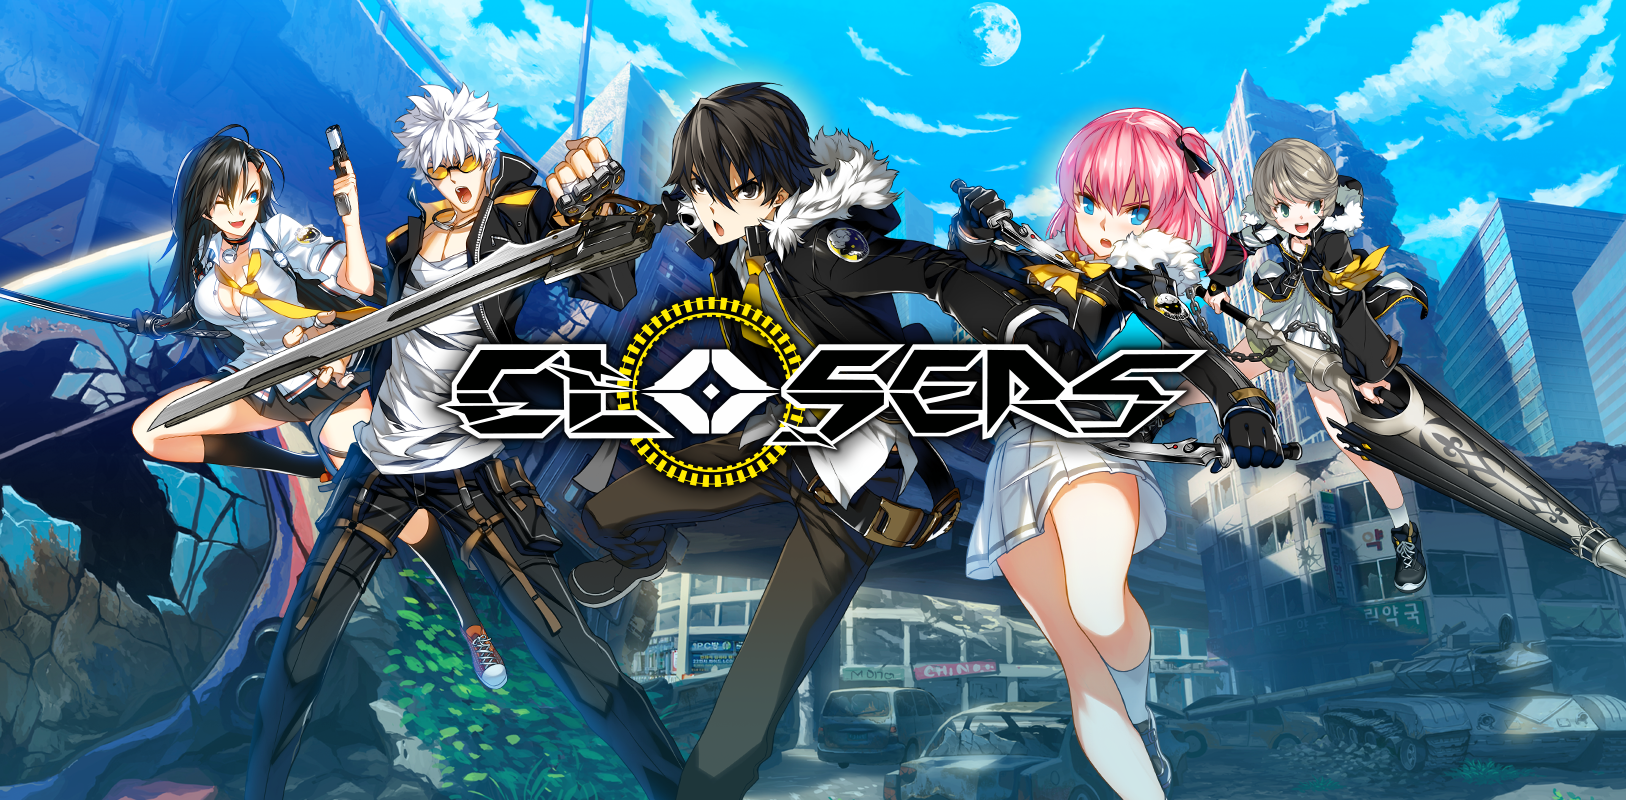 Closers wallpaper 1